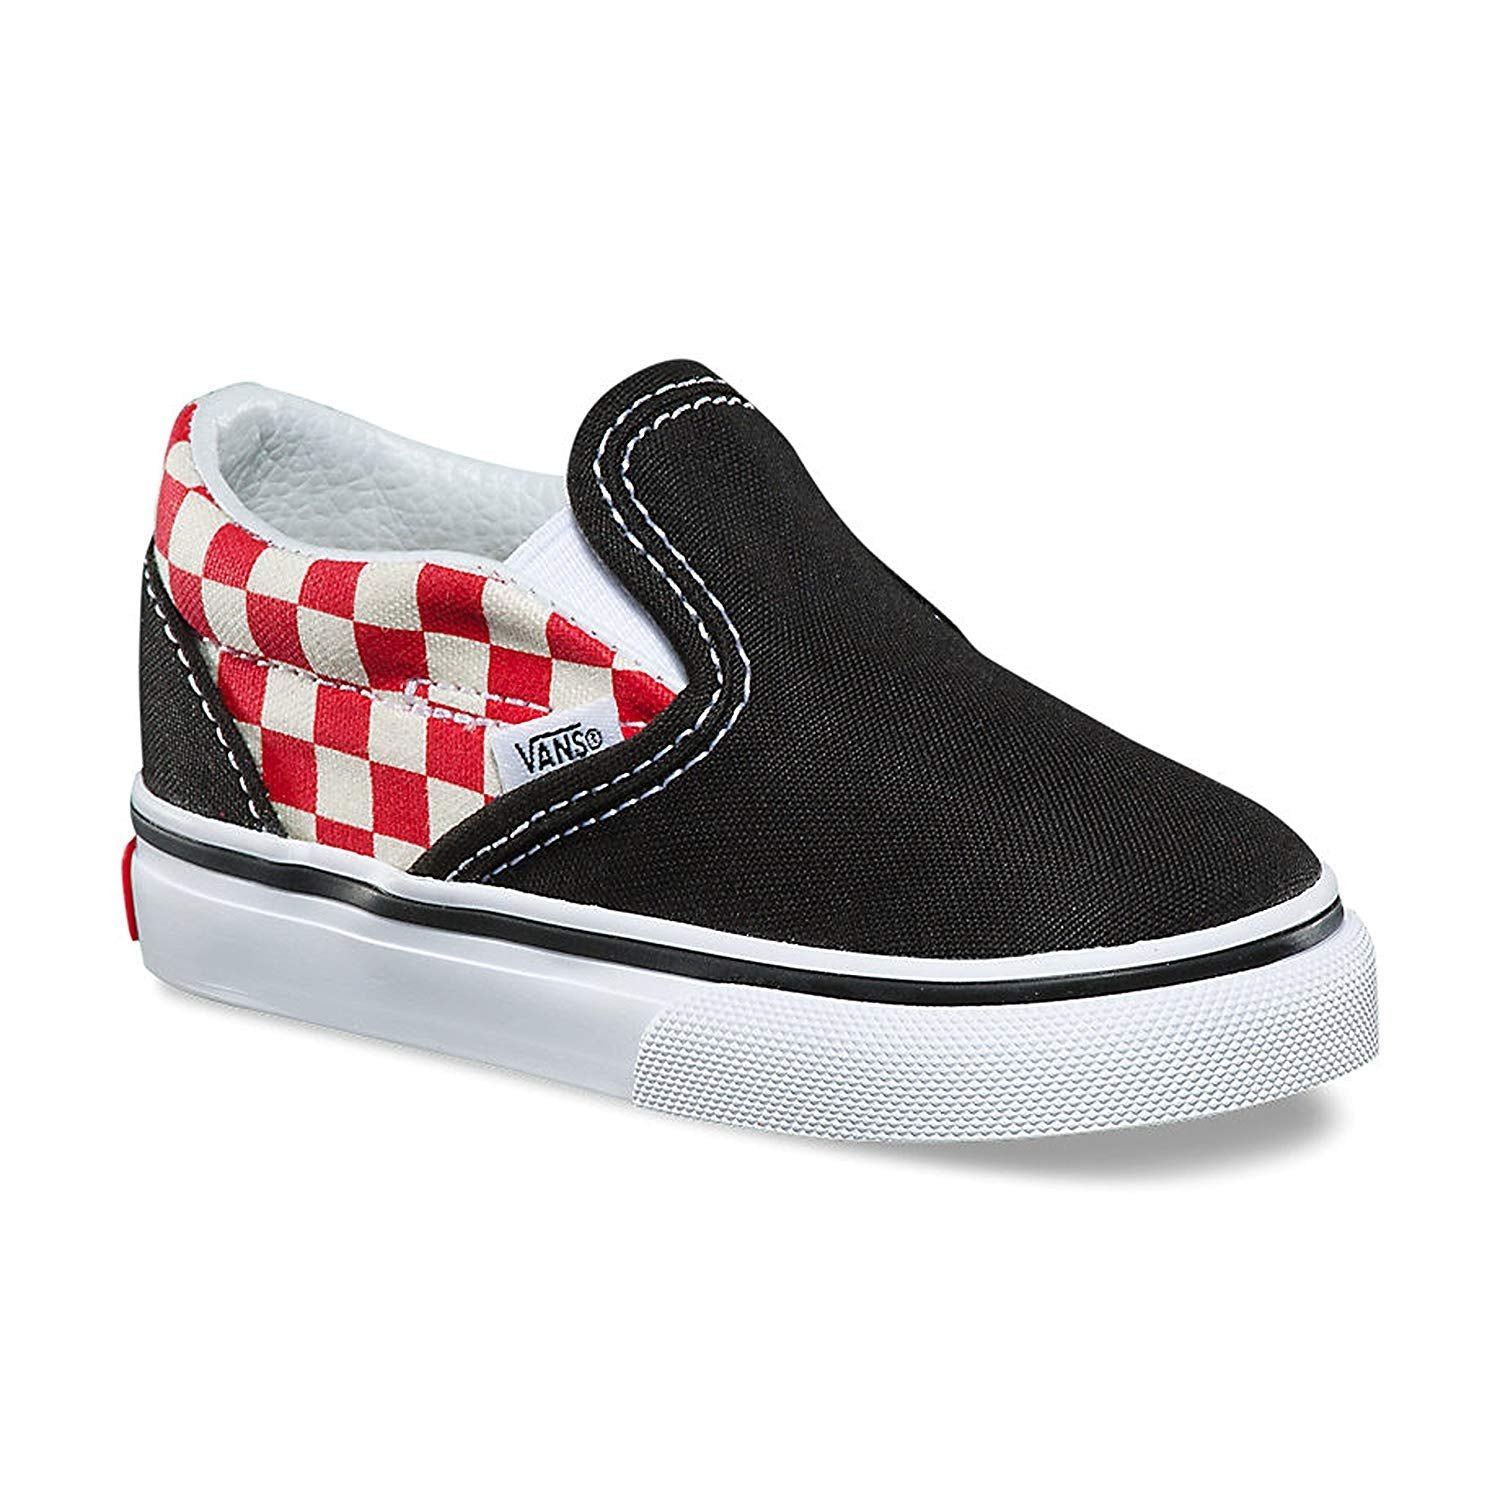 Vans Classic Slip On Checkerboard Black/Red Skate Shoes 8.5 Toddler